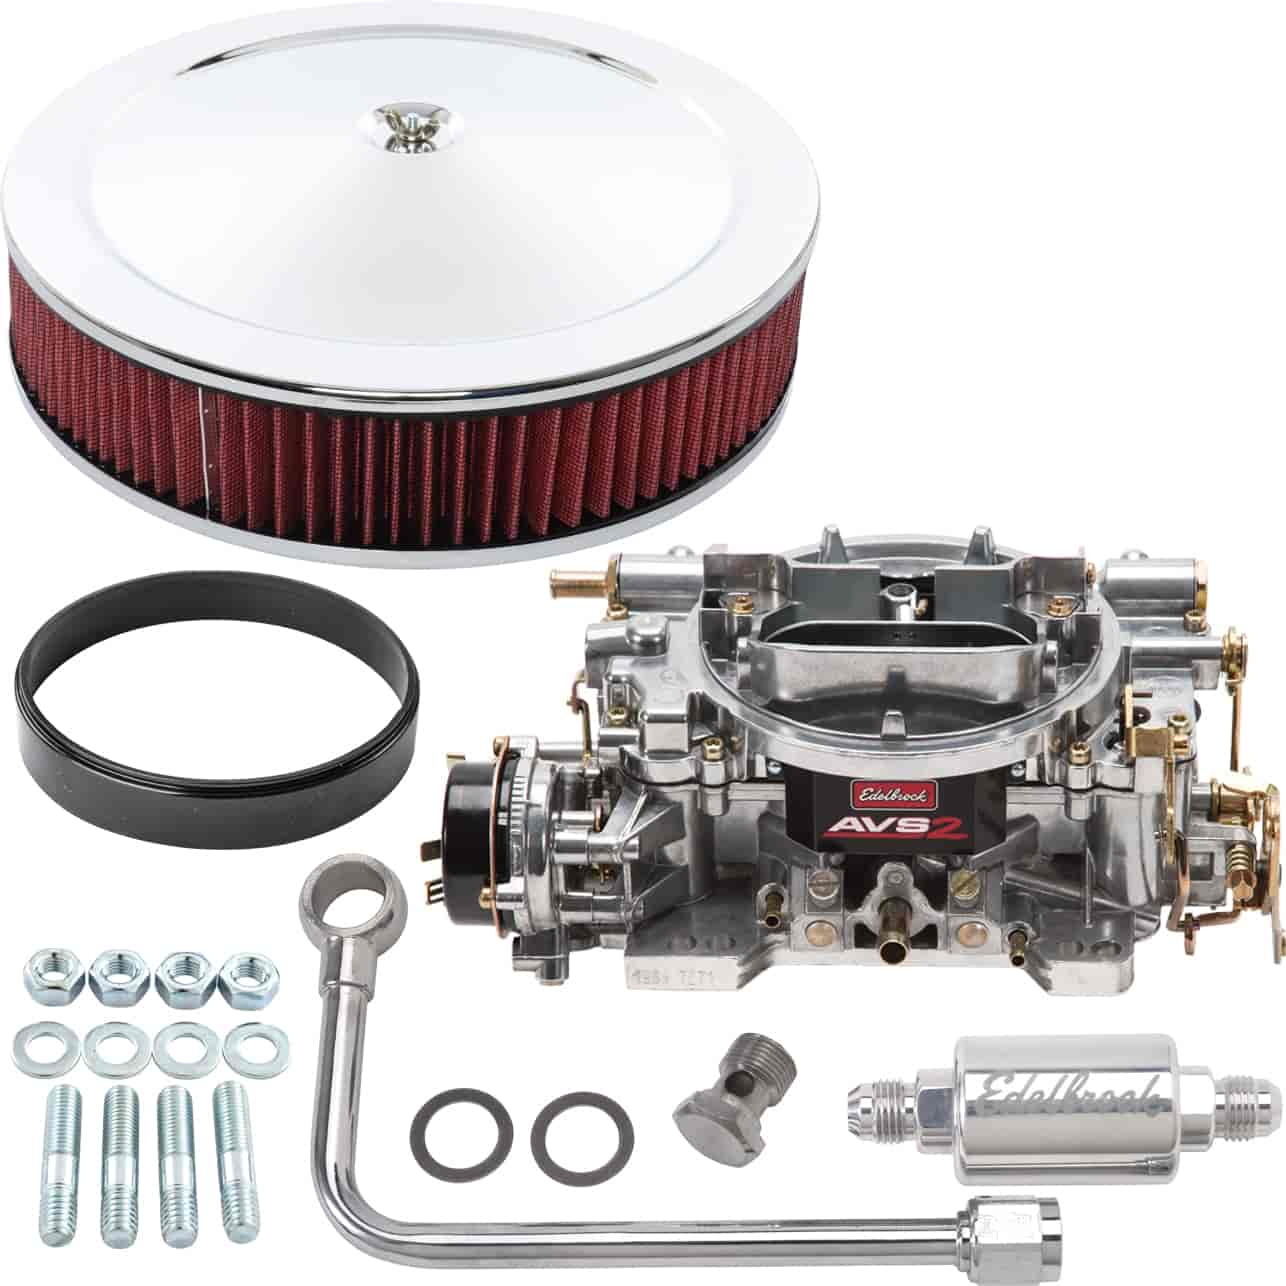 AVS2 800 Series 1912 /& 1913 Edelbrock 1949 Calibration Kit